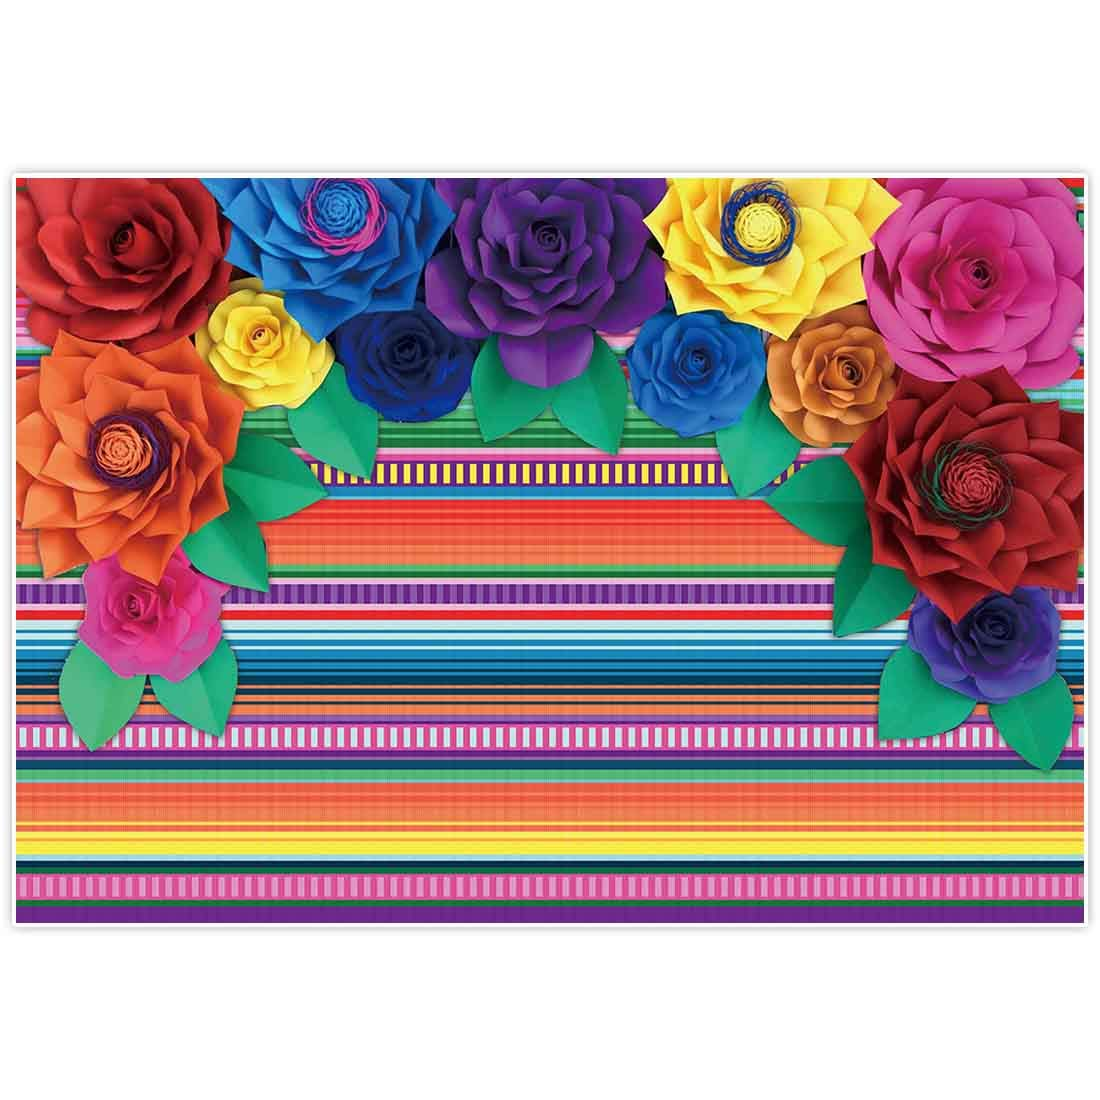 Allenjoy 7x5ft Mexican Fiesta Theme Backdrop for Photography Colorful Paper Flowers Decor Festival Birthday Party Decor Cinco De Mayo Carnival Banner Decorations Background Photo Studio Booth Supplies by Allenjoy